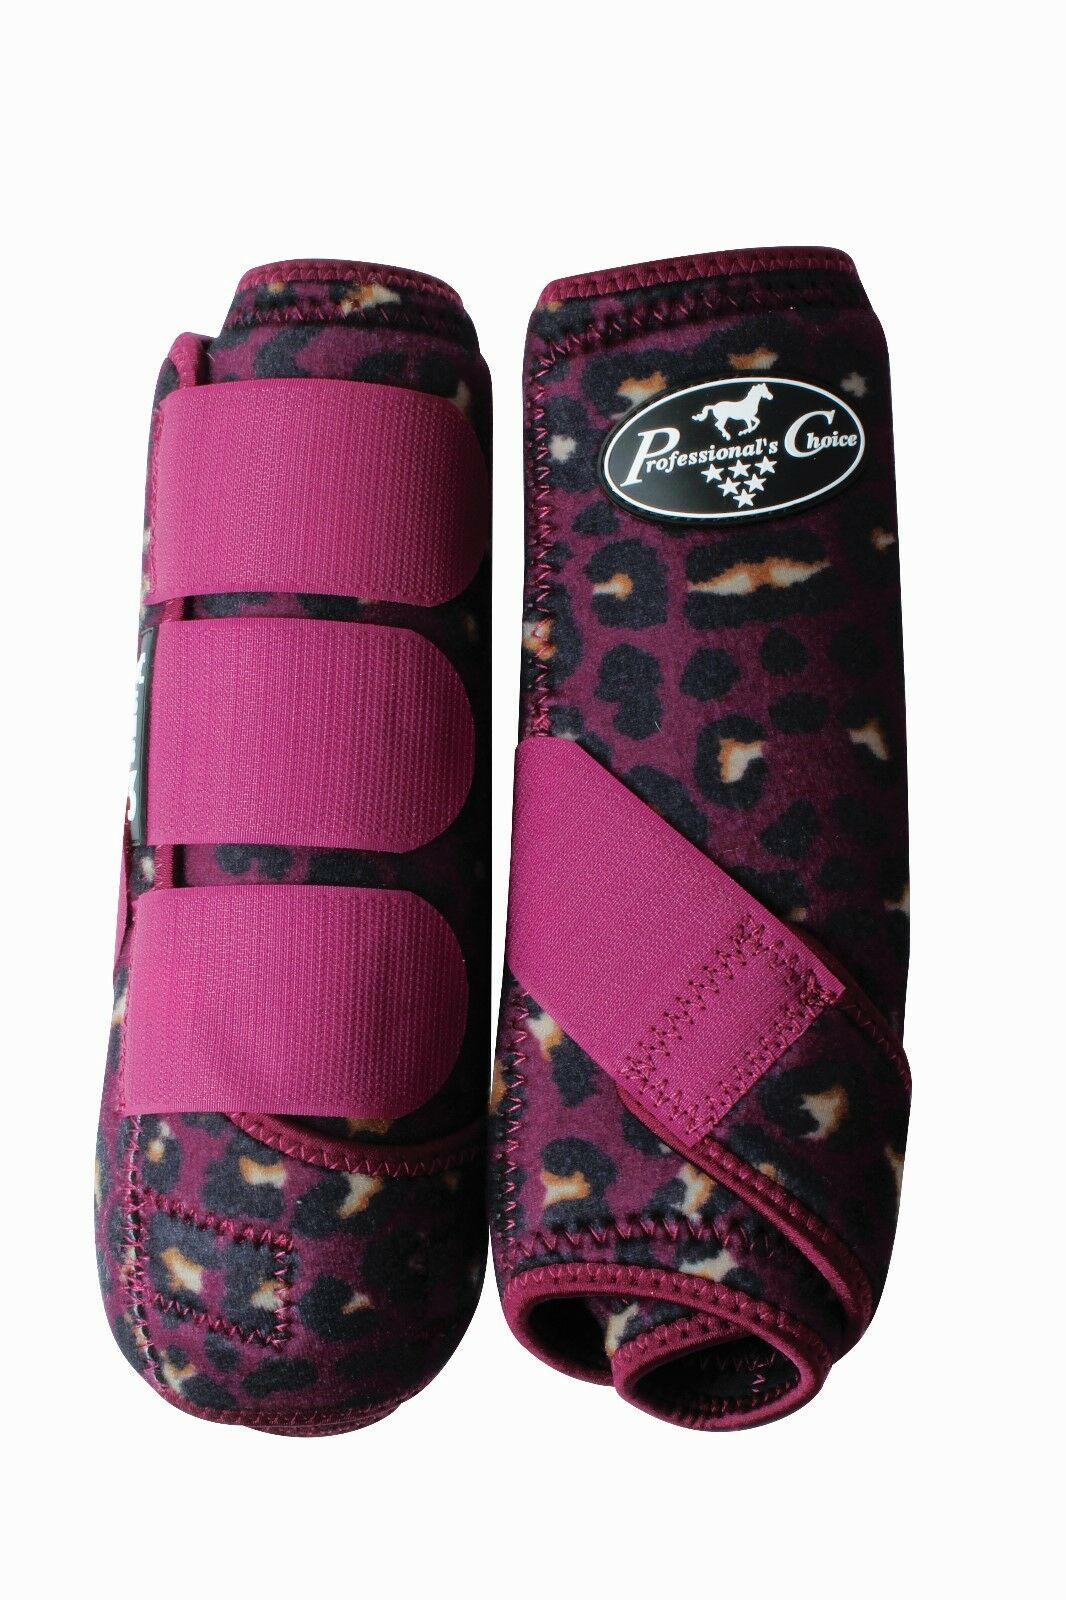 Professional's Choice SMB3 Pair Horse Equine SMB Medicine Boots  Cheetah  best prices and freshest styles